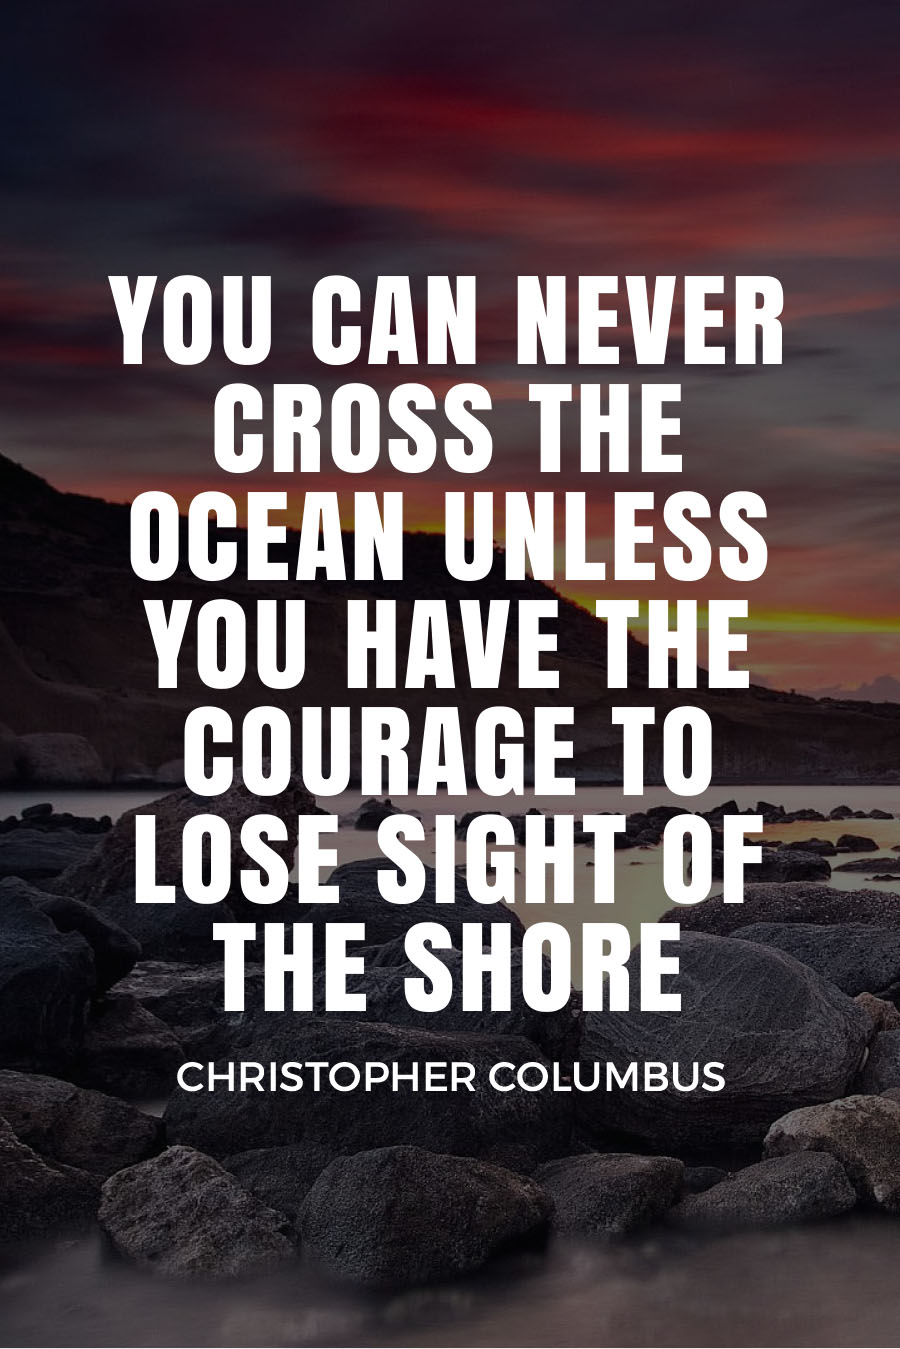 Five Quotes About Travel Fears - YOU CAN NEVER CROSS THE OCEAN UNLESS YOU HAVE THE COURAGE TO LOSE SIGHT OF THE SHORE - Christopher Columbus